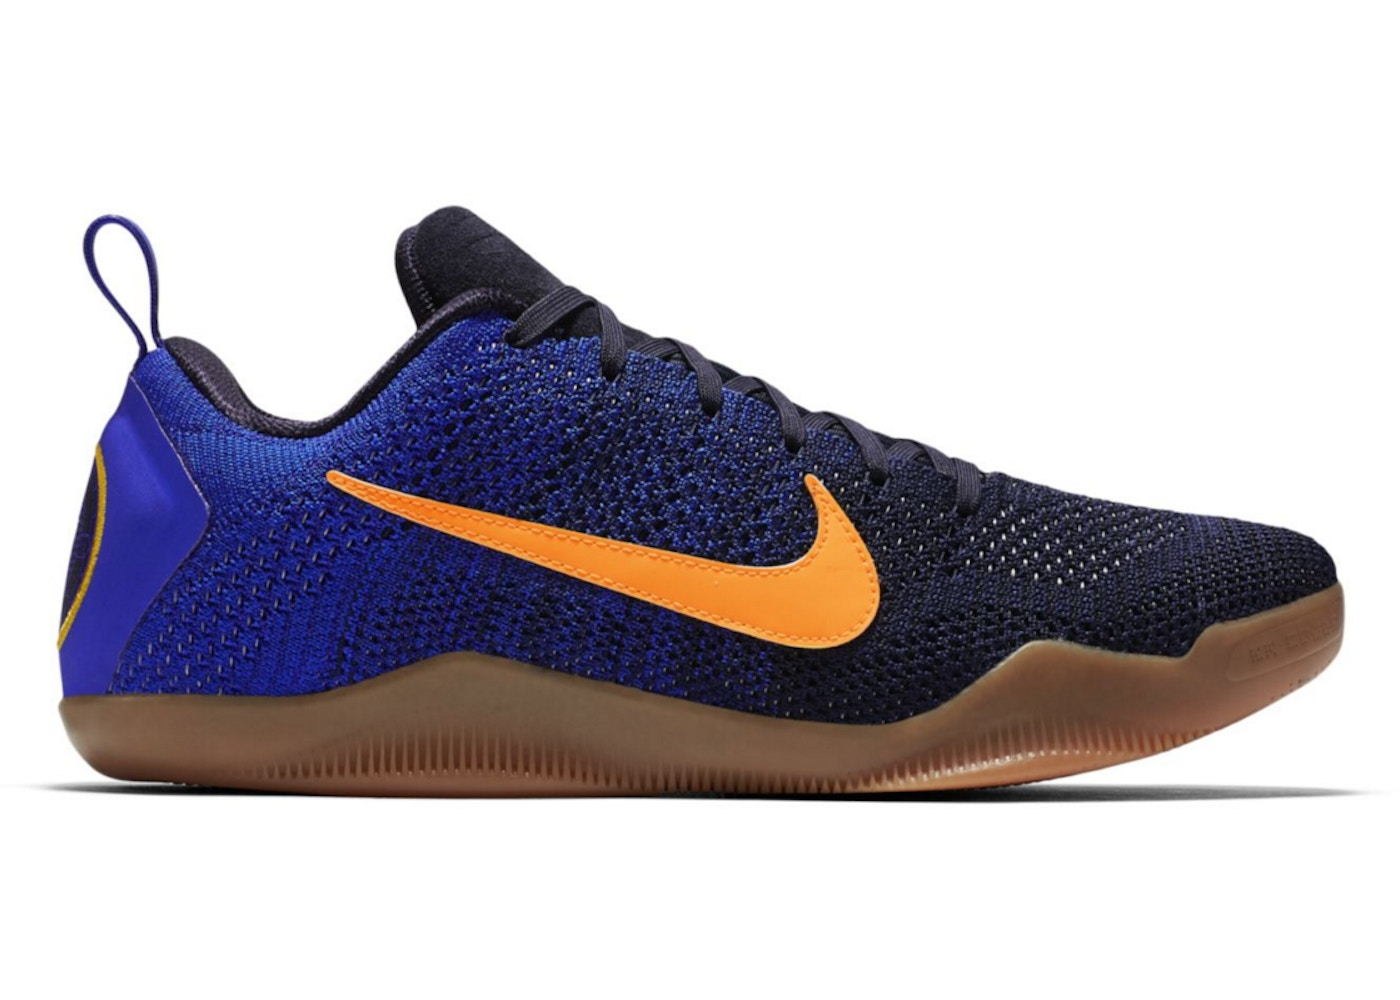 new arrival 7ef5a 21d4f Kobe 11 Elite Low FCB Mambacurial - 844130-464